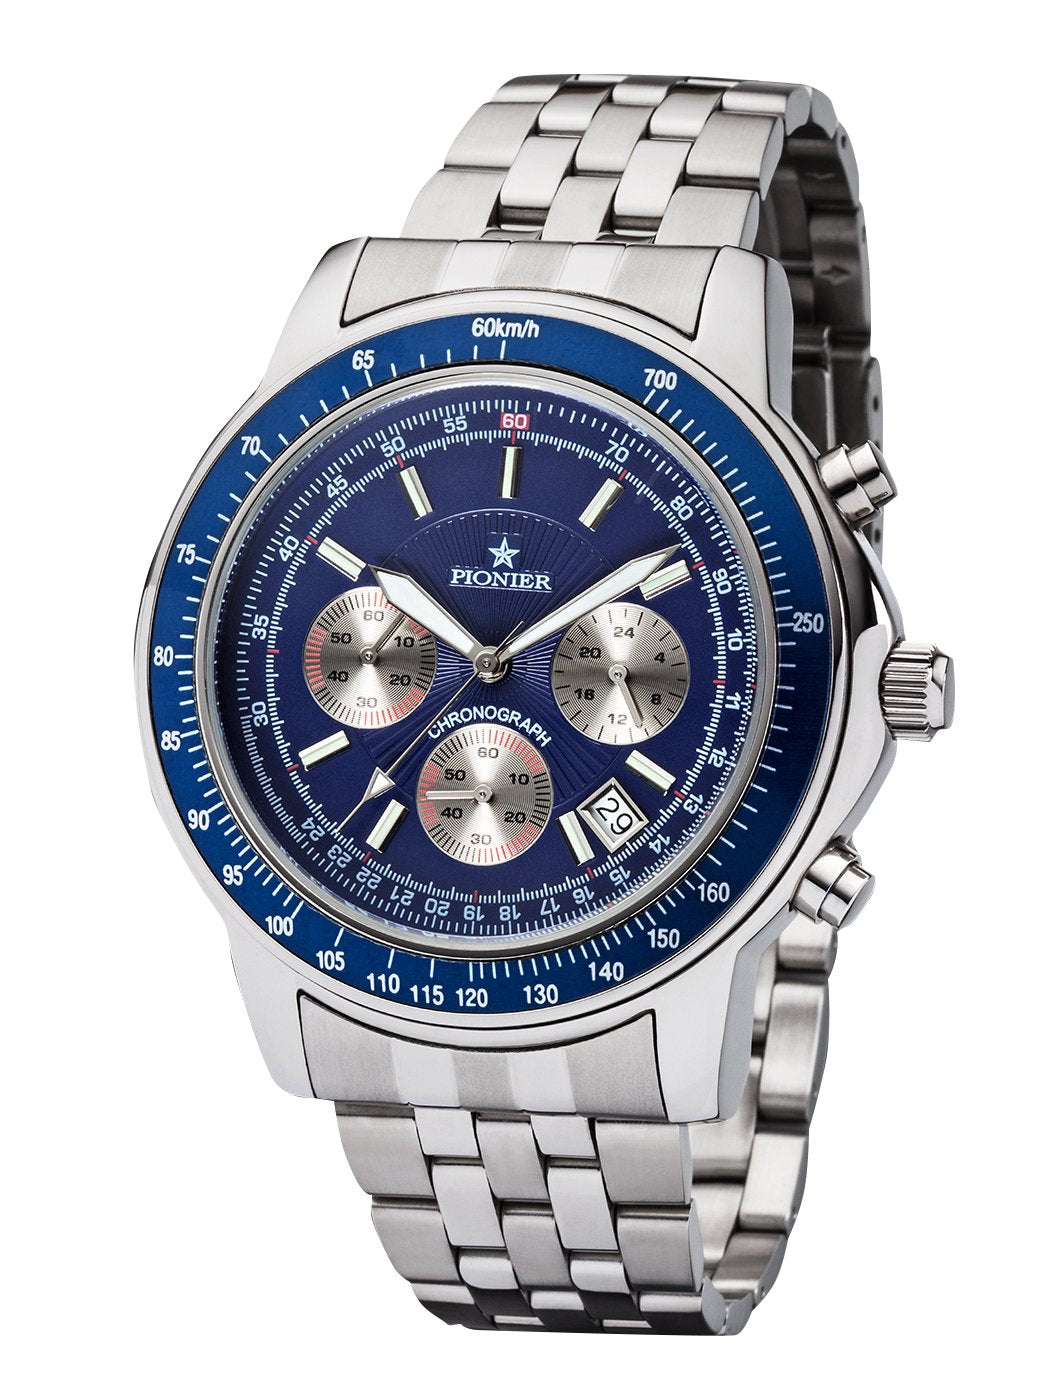 Tirona Chronograph Pionier Germany